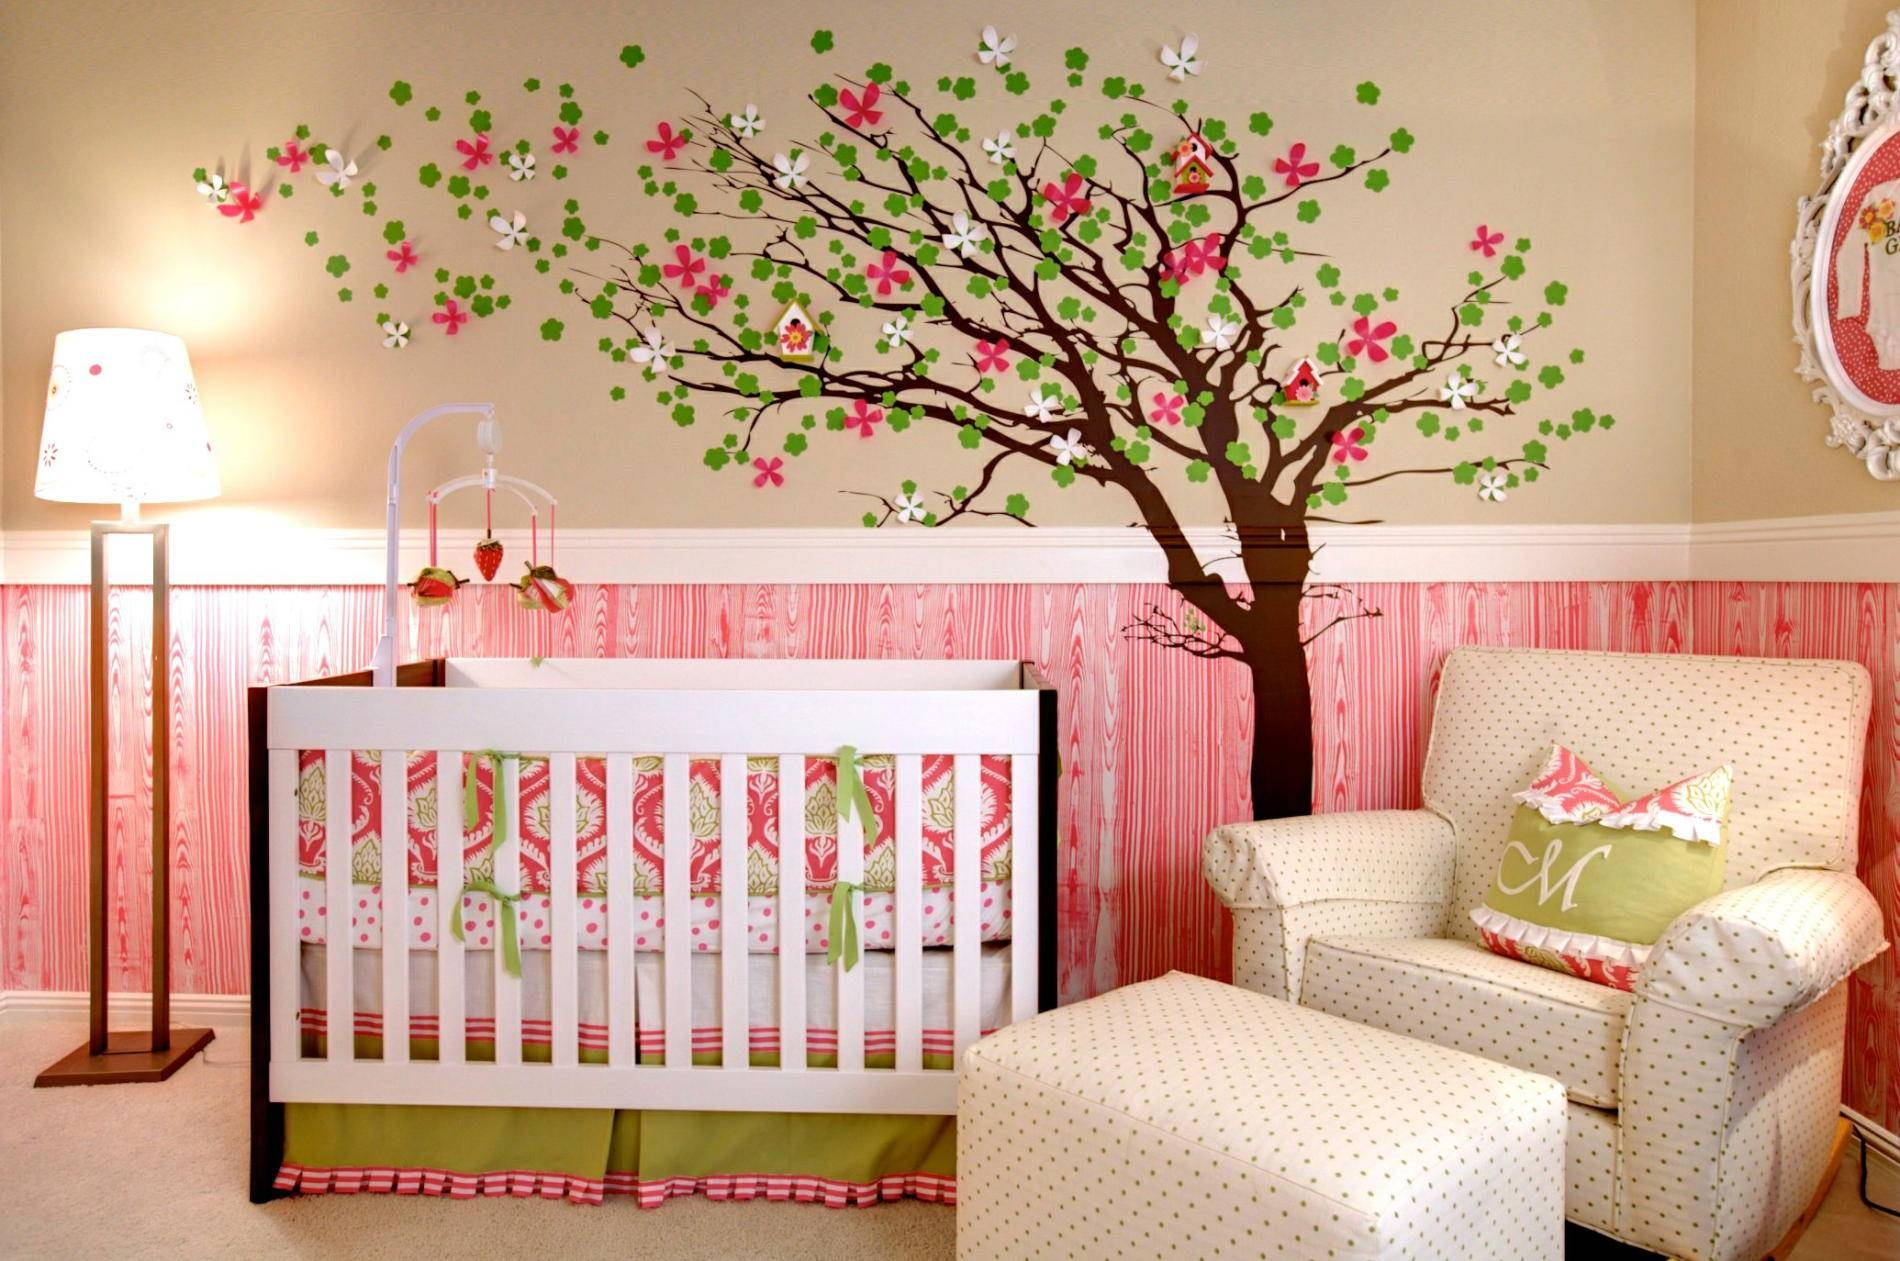 Baby Nursery: Accent Wall Decorations For Baby Room With Murals Regarding Most Recently Released Baby Nursery 3d Wall Art (View 8 of 20)